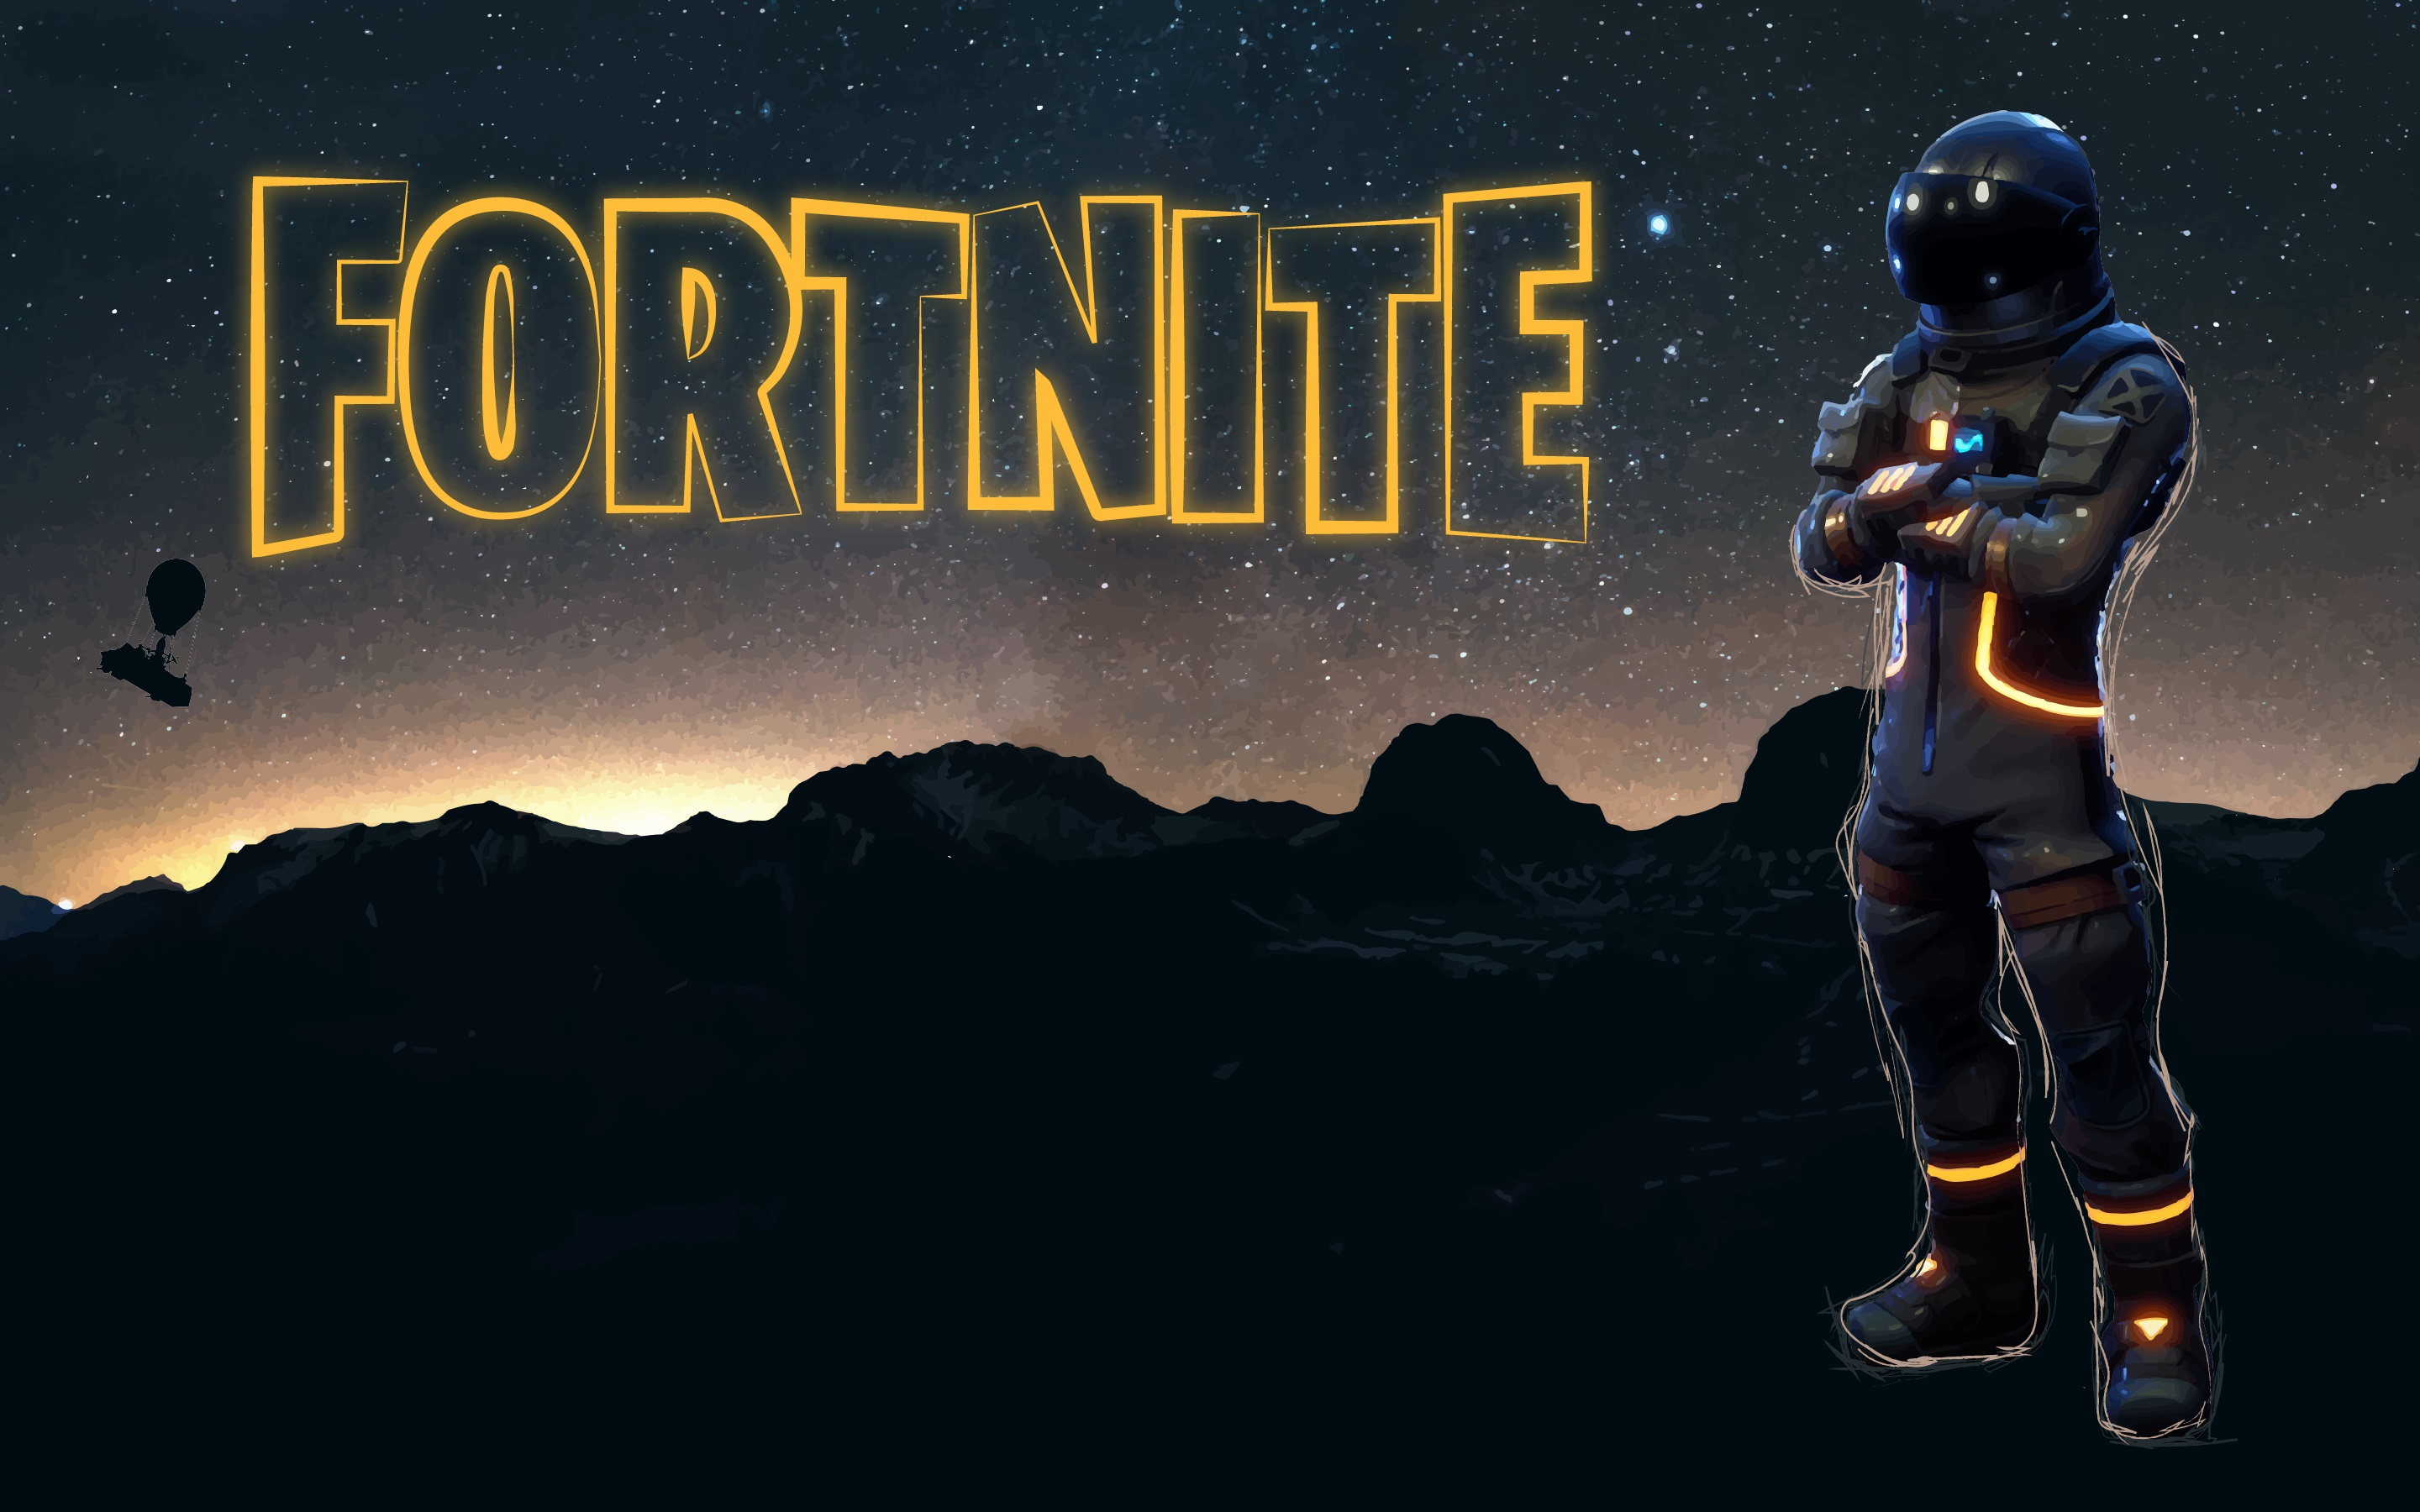 Fortnite background 27